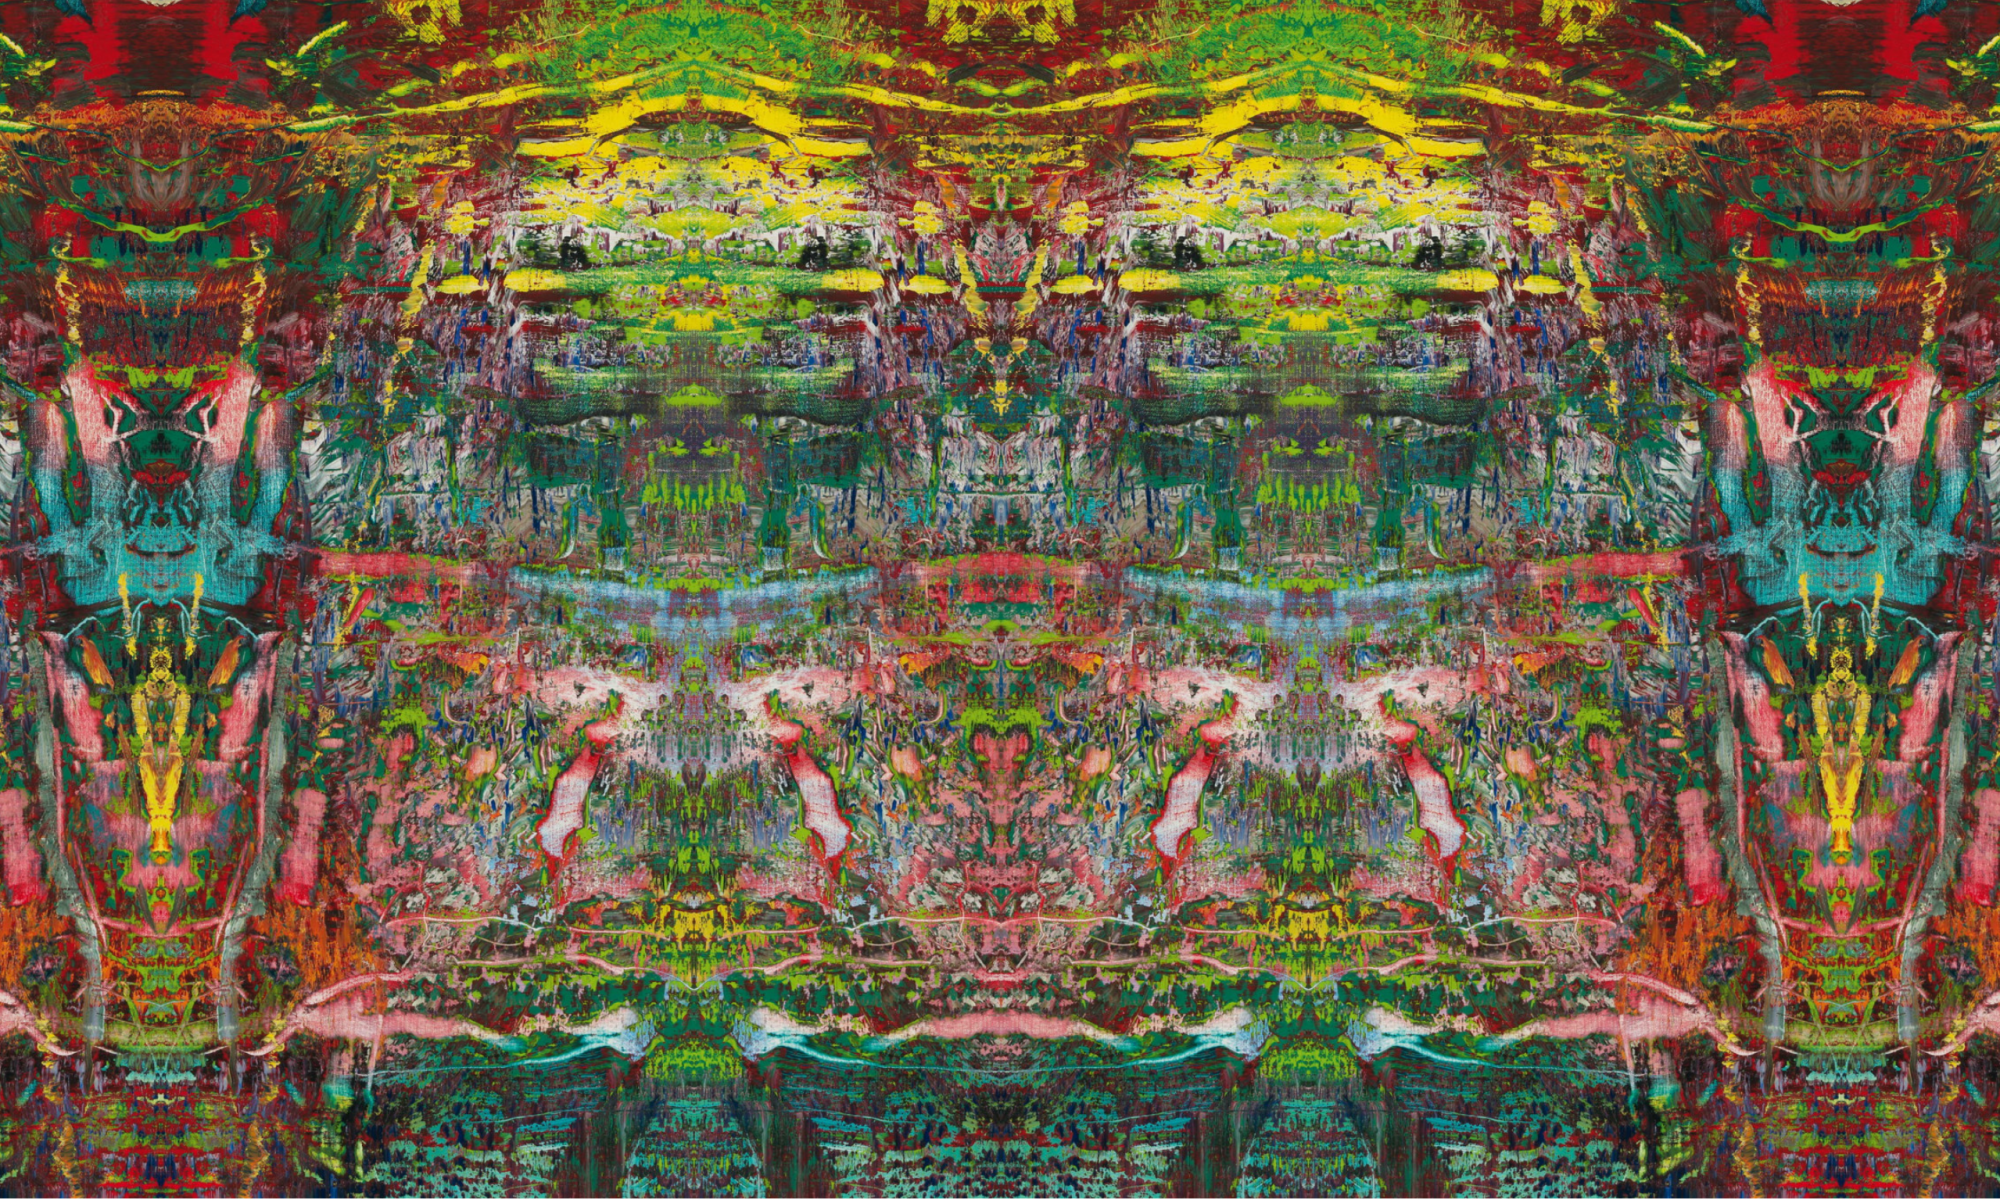 digitally generated image based on a painting by Gerhard Richter